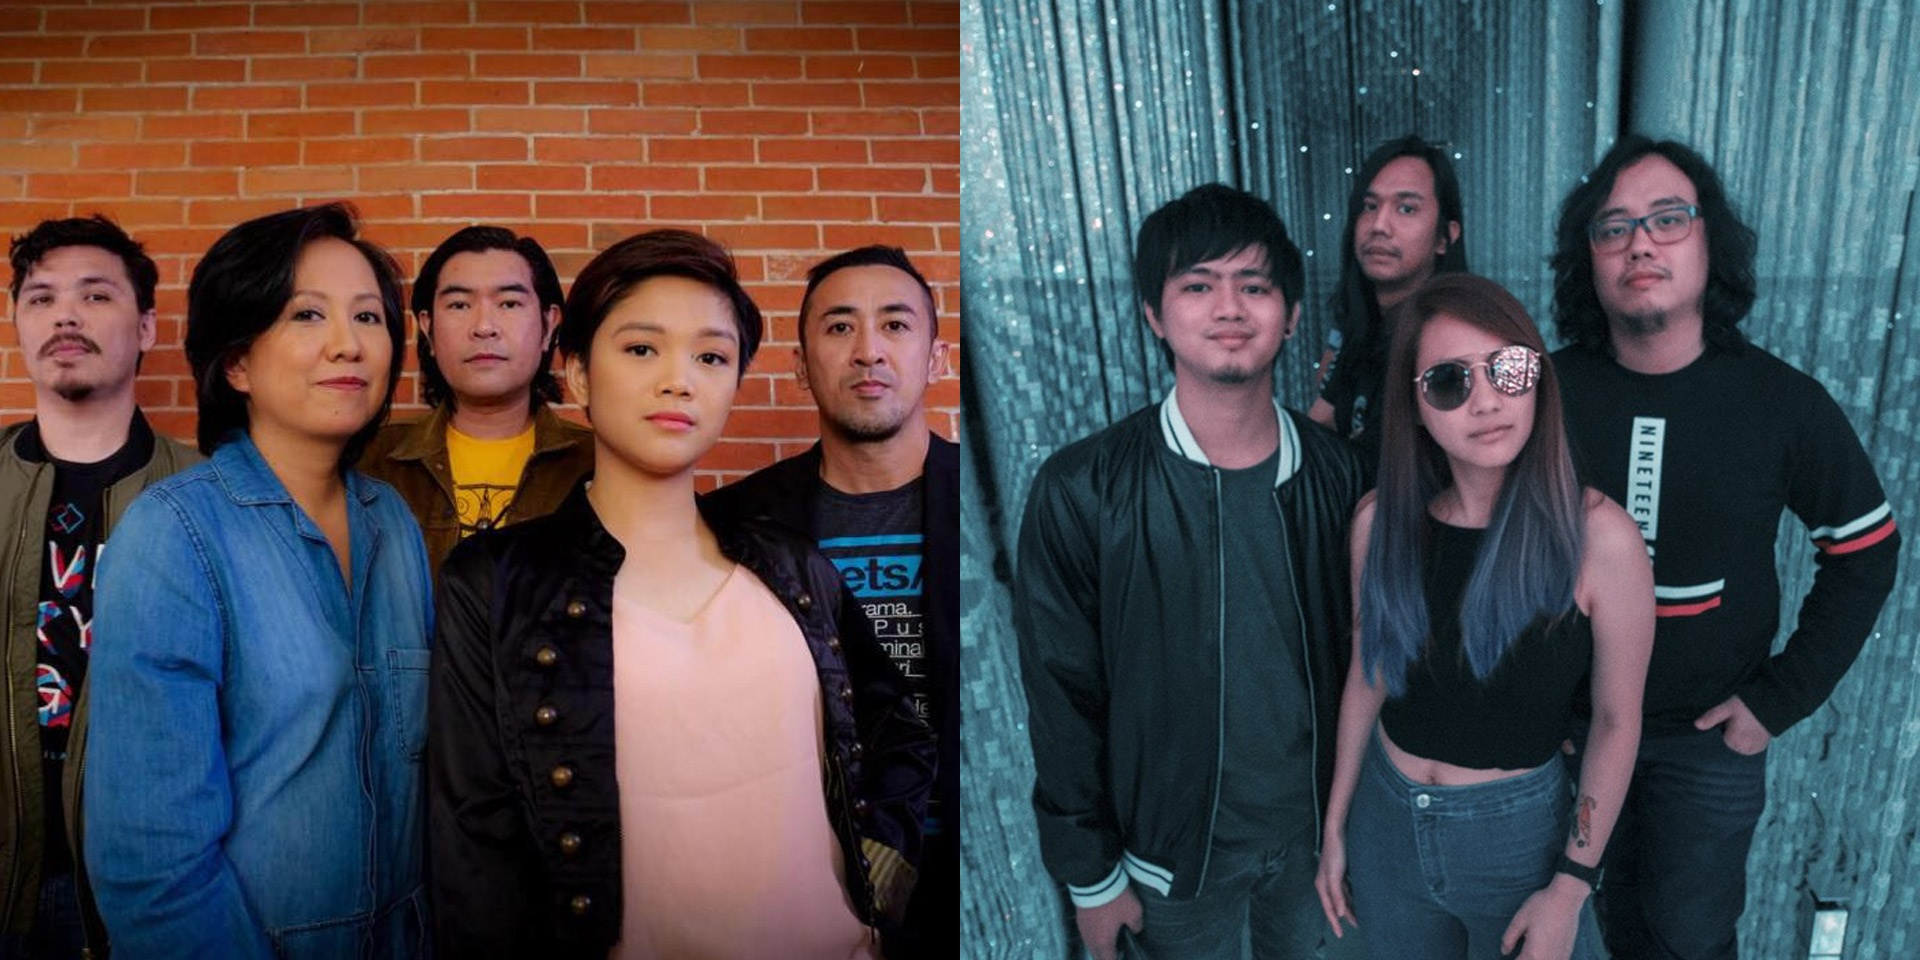 Imago, Gracenote, and more to perform at benefit concert VICTUS: Rock for Cure